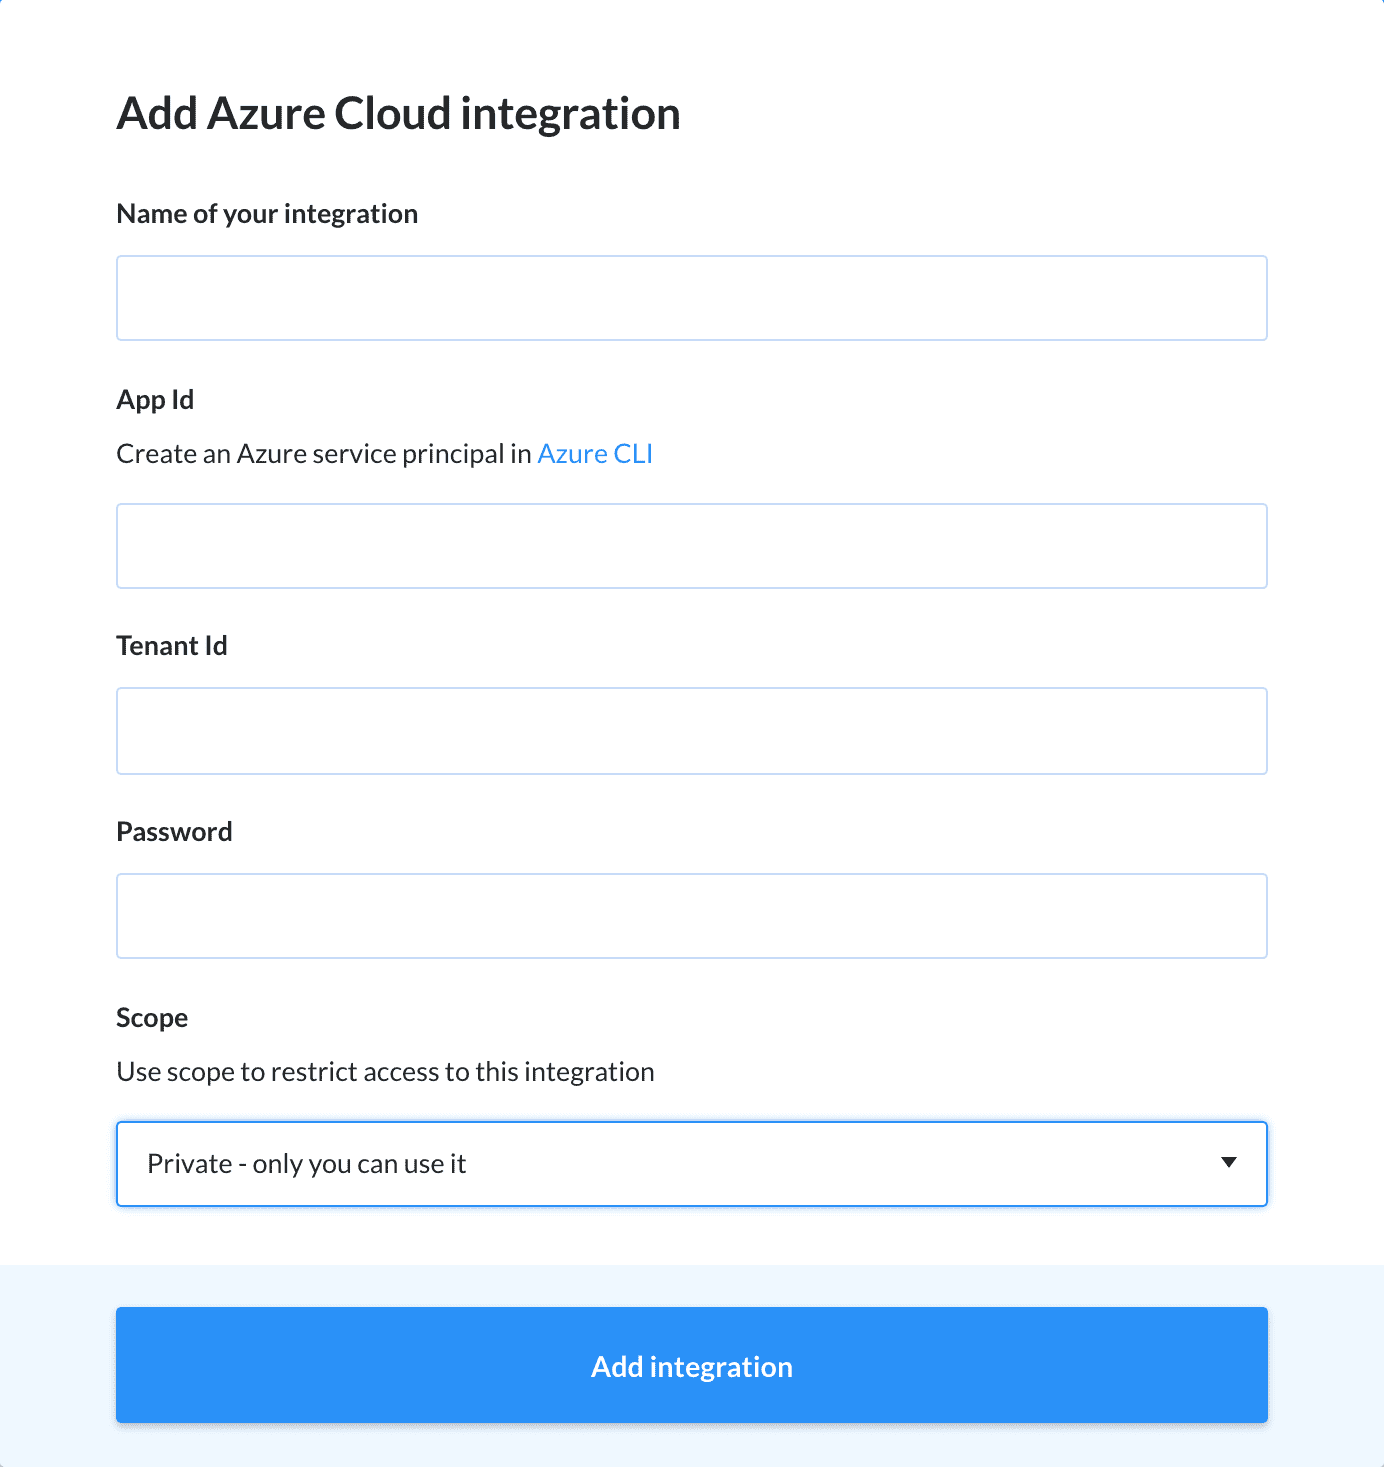 Adding Azure Cloud integration